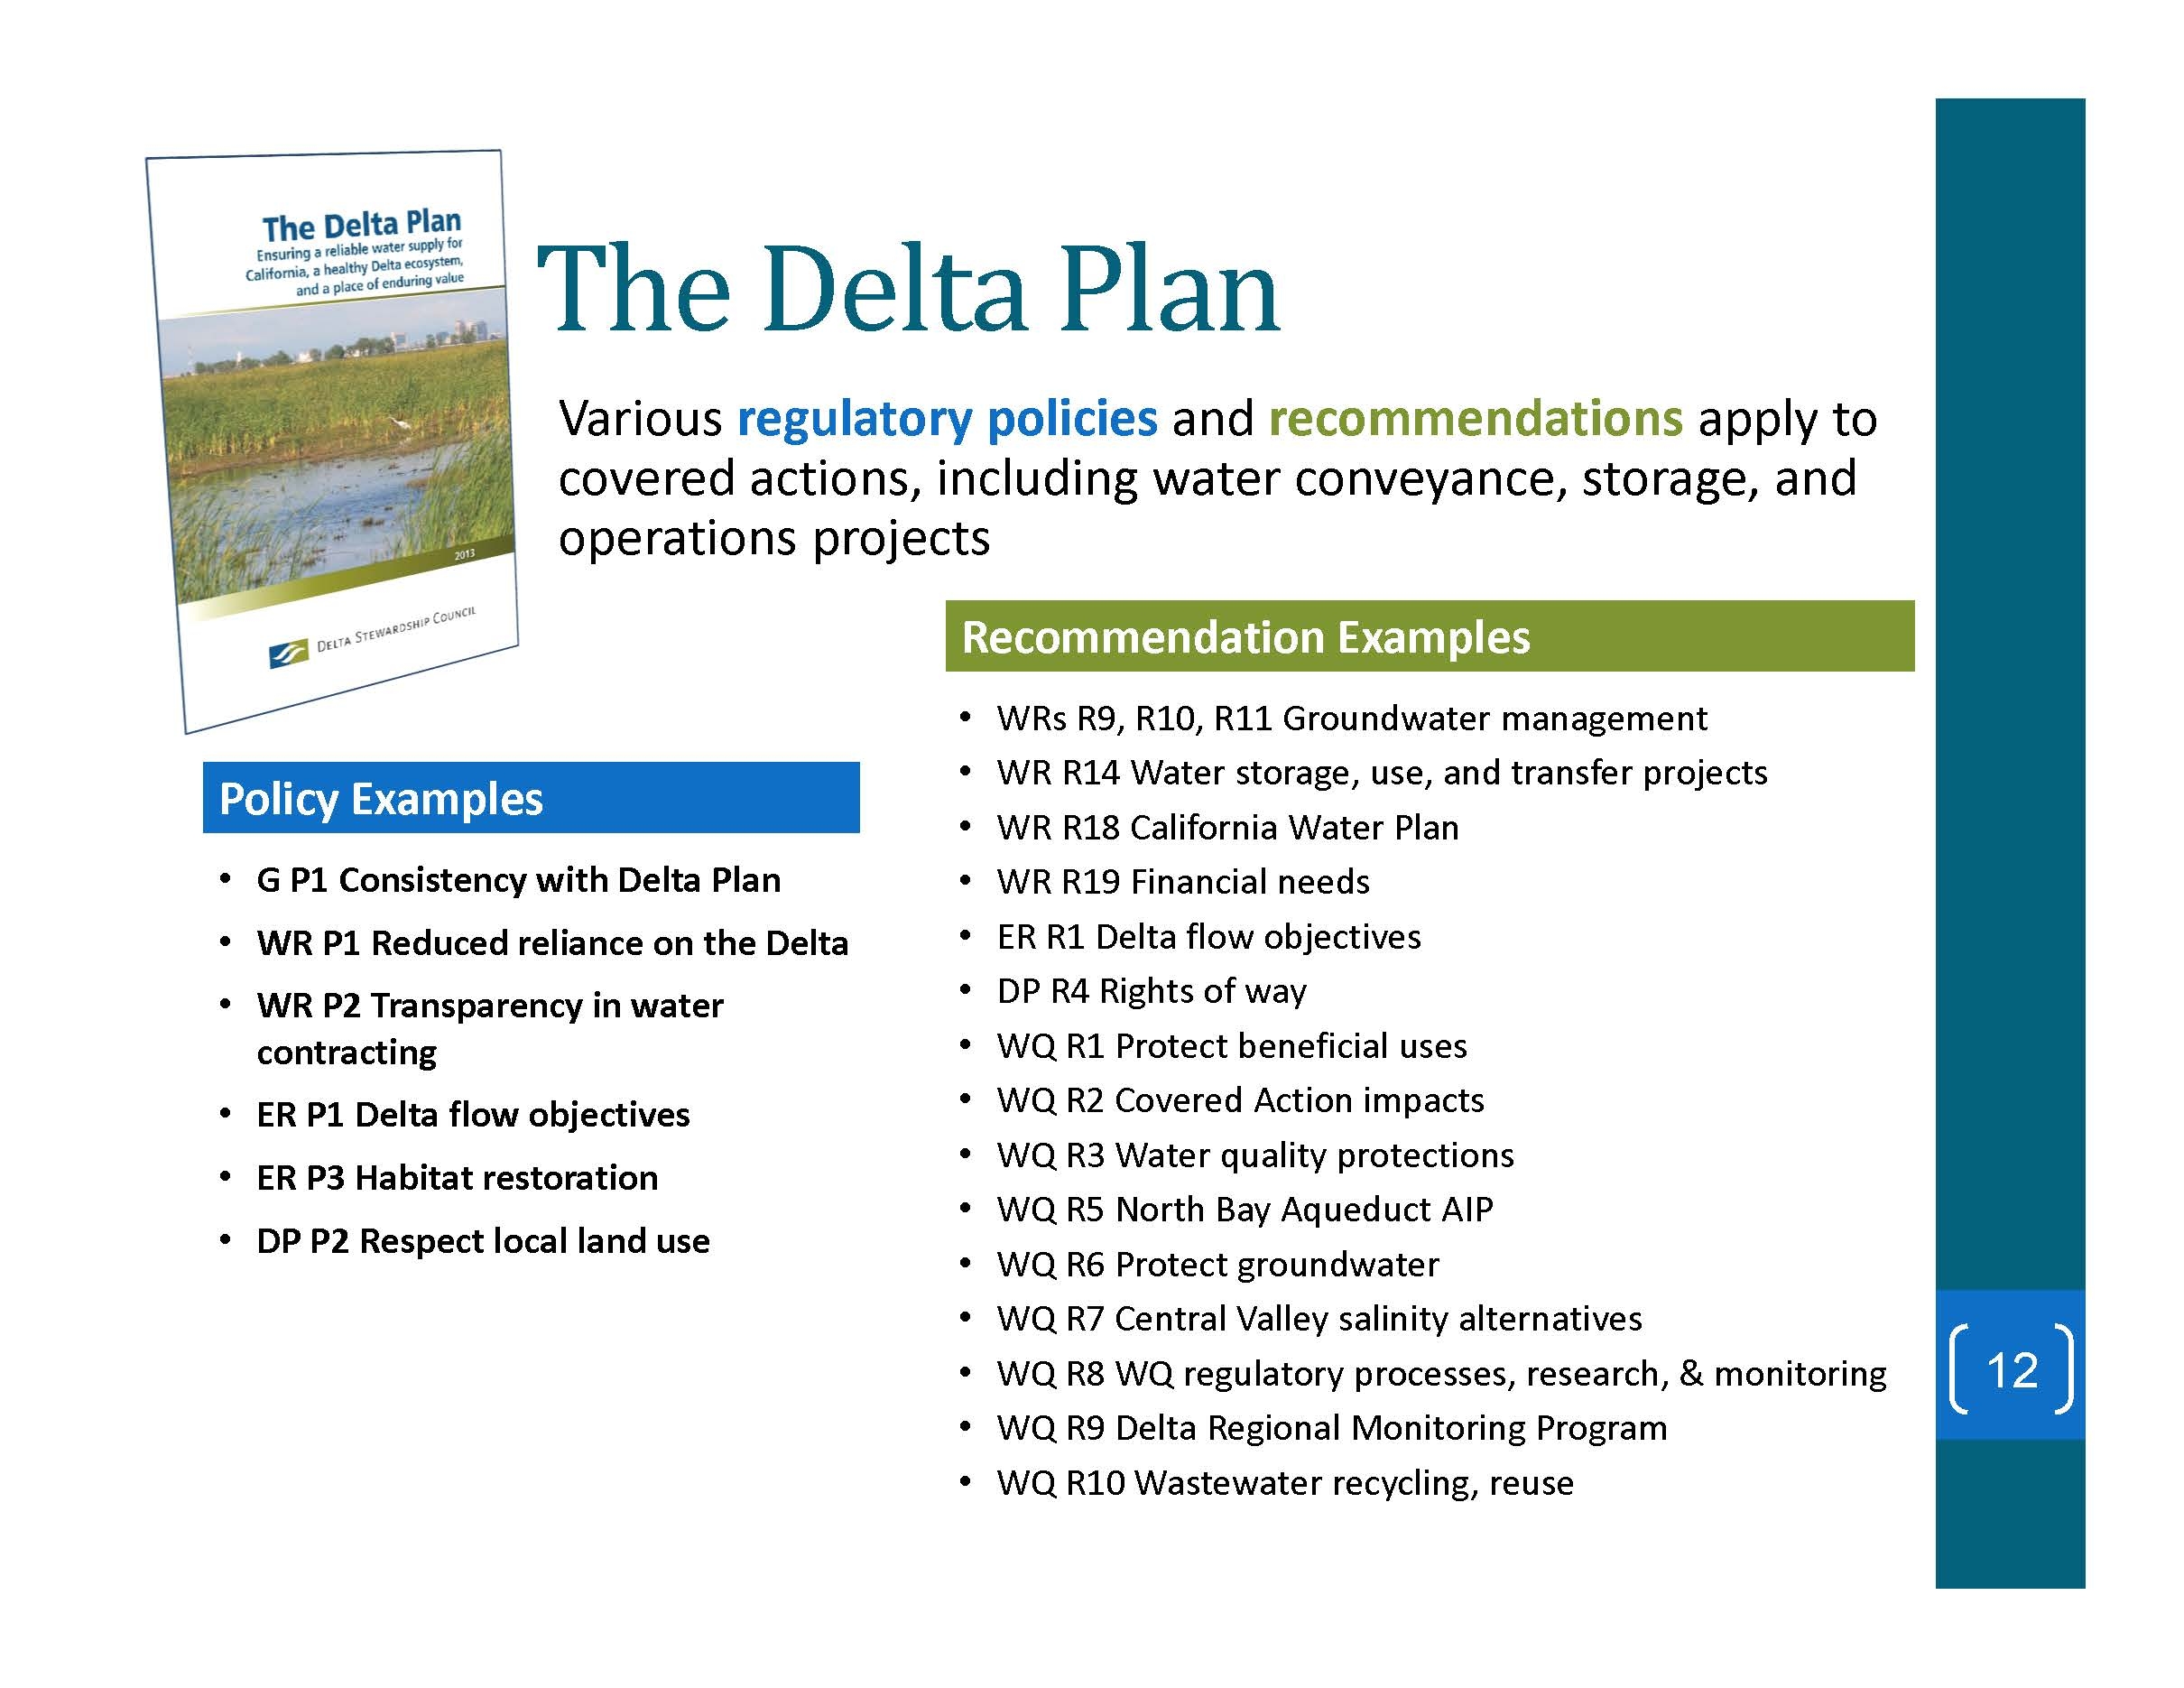 DELTA STEWARDSHIP COUNCIL: Changes made to Conveyance